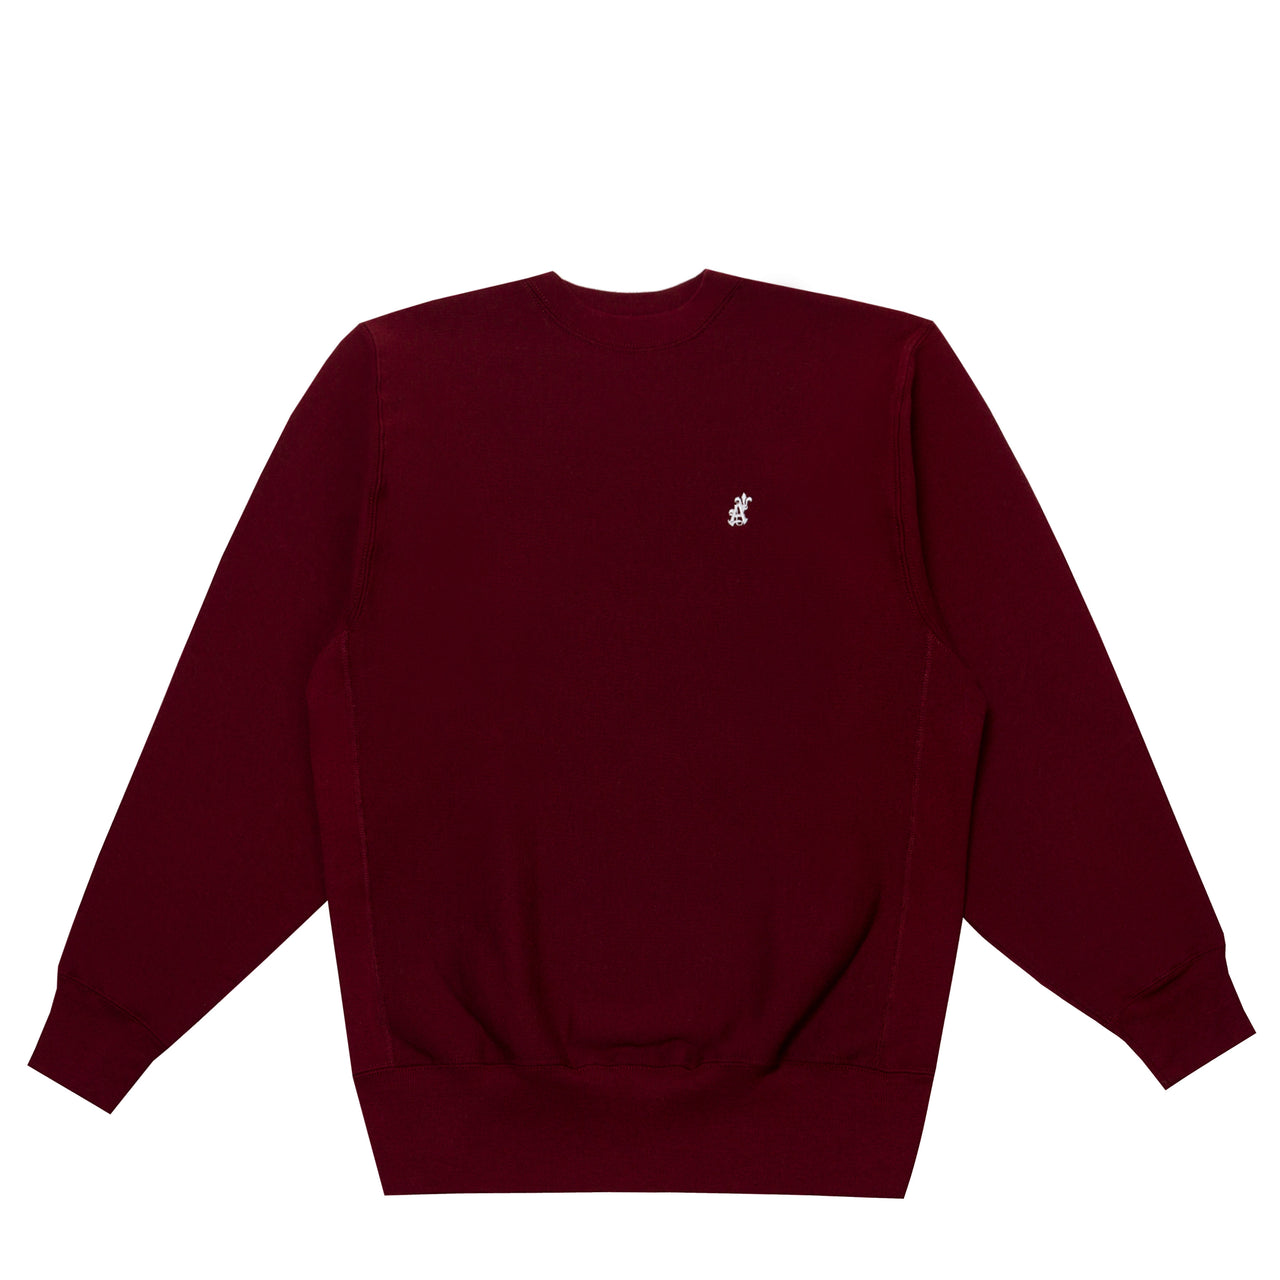 CROSS-KNIT CREW FLEECE SP21 - MADE IN USA